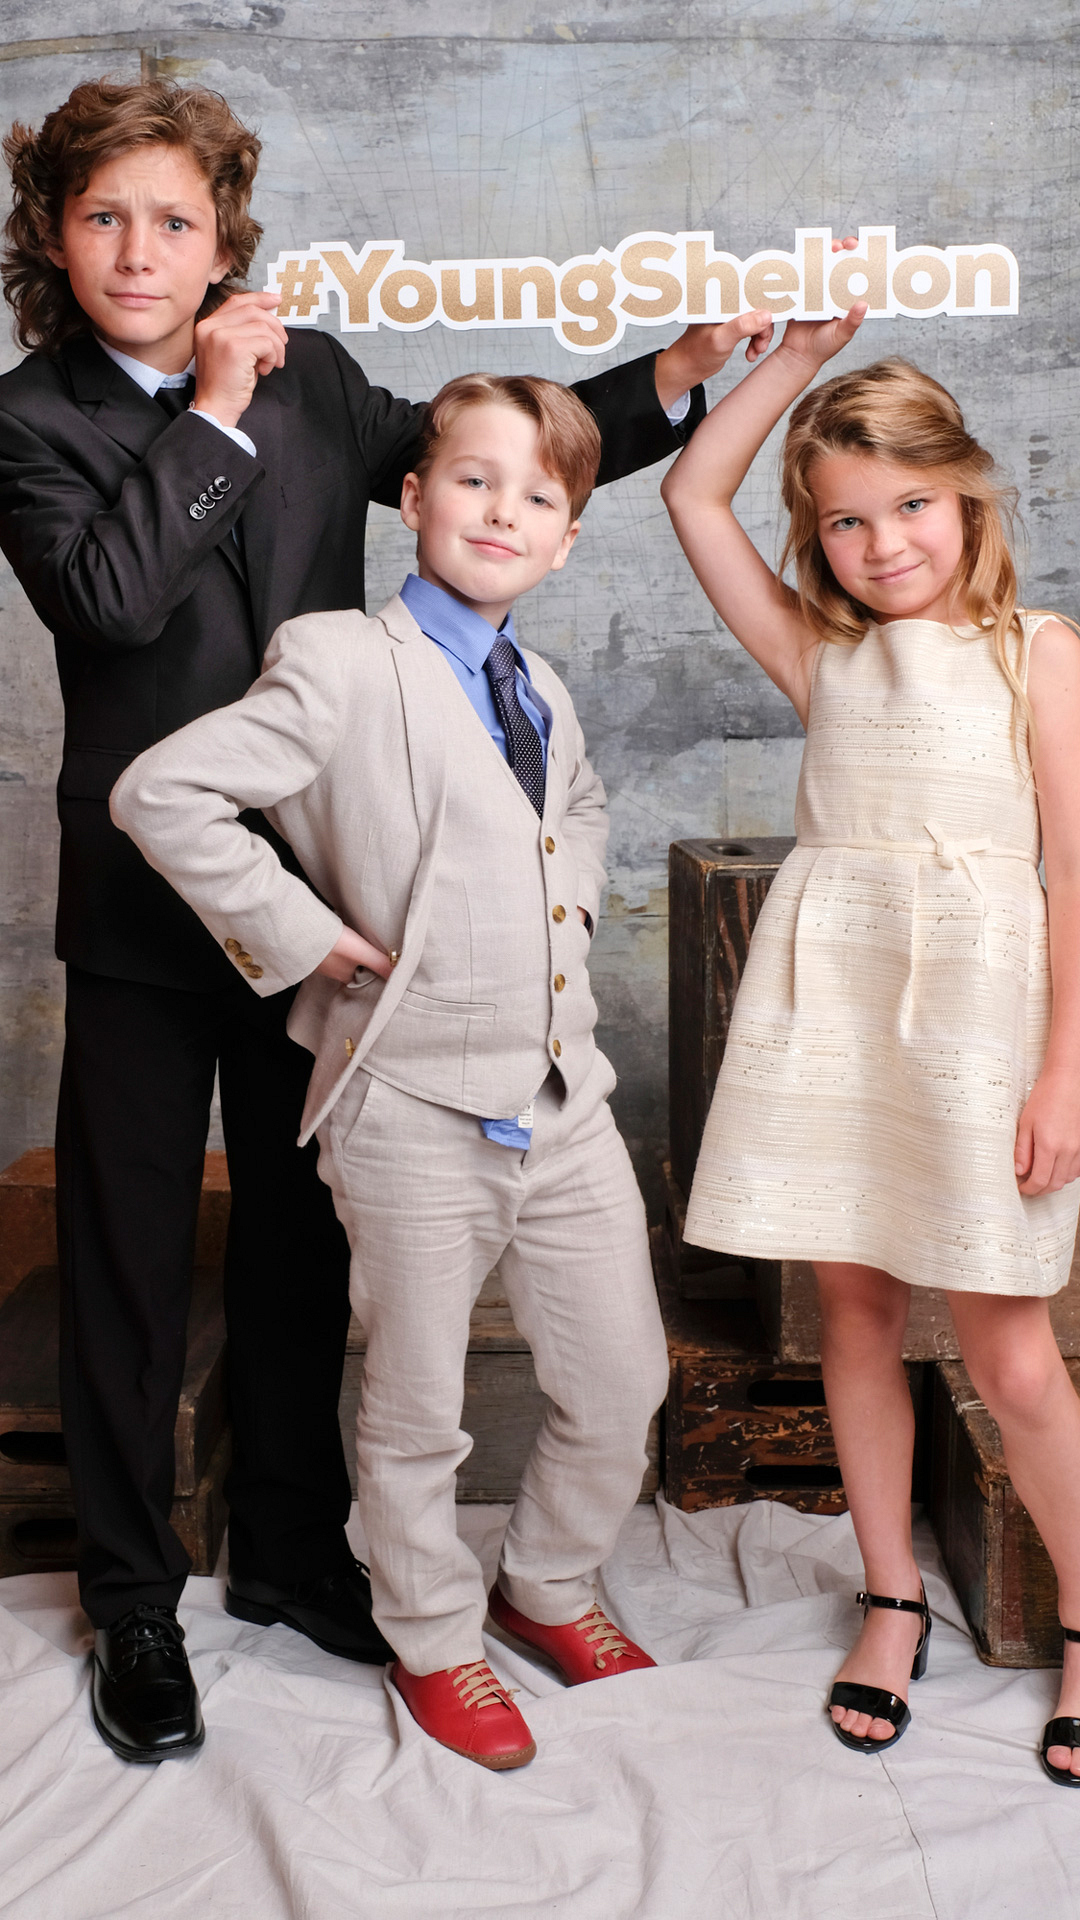 Montana Jordan, Iain Armitage, and Raegan Revord of Young Sheldon